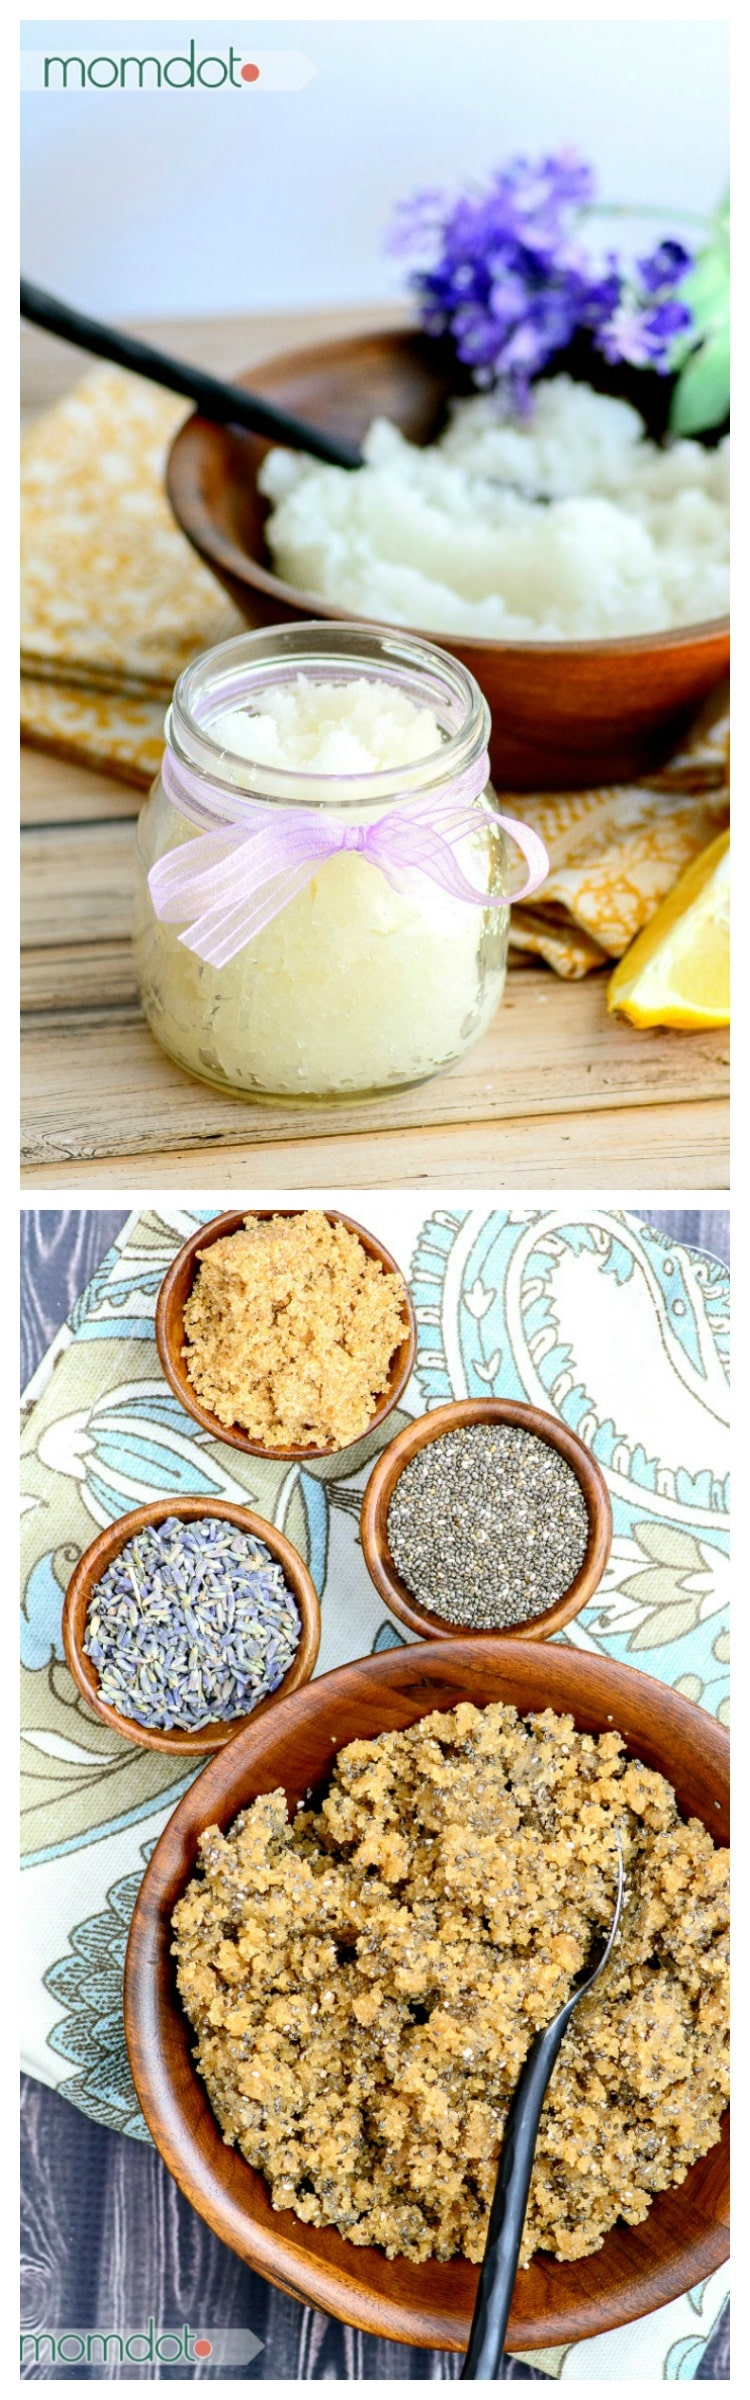 4 Lavender Sugar Scrub Recipe Ideas! Brown Sugar, Lavender and Chia Scrub Recipe: Never buy store bought scrub again!